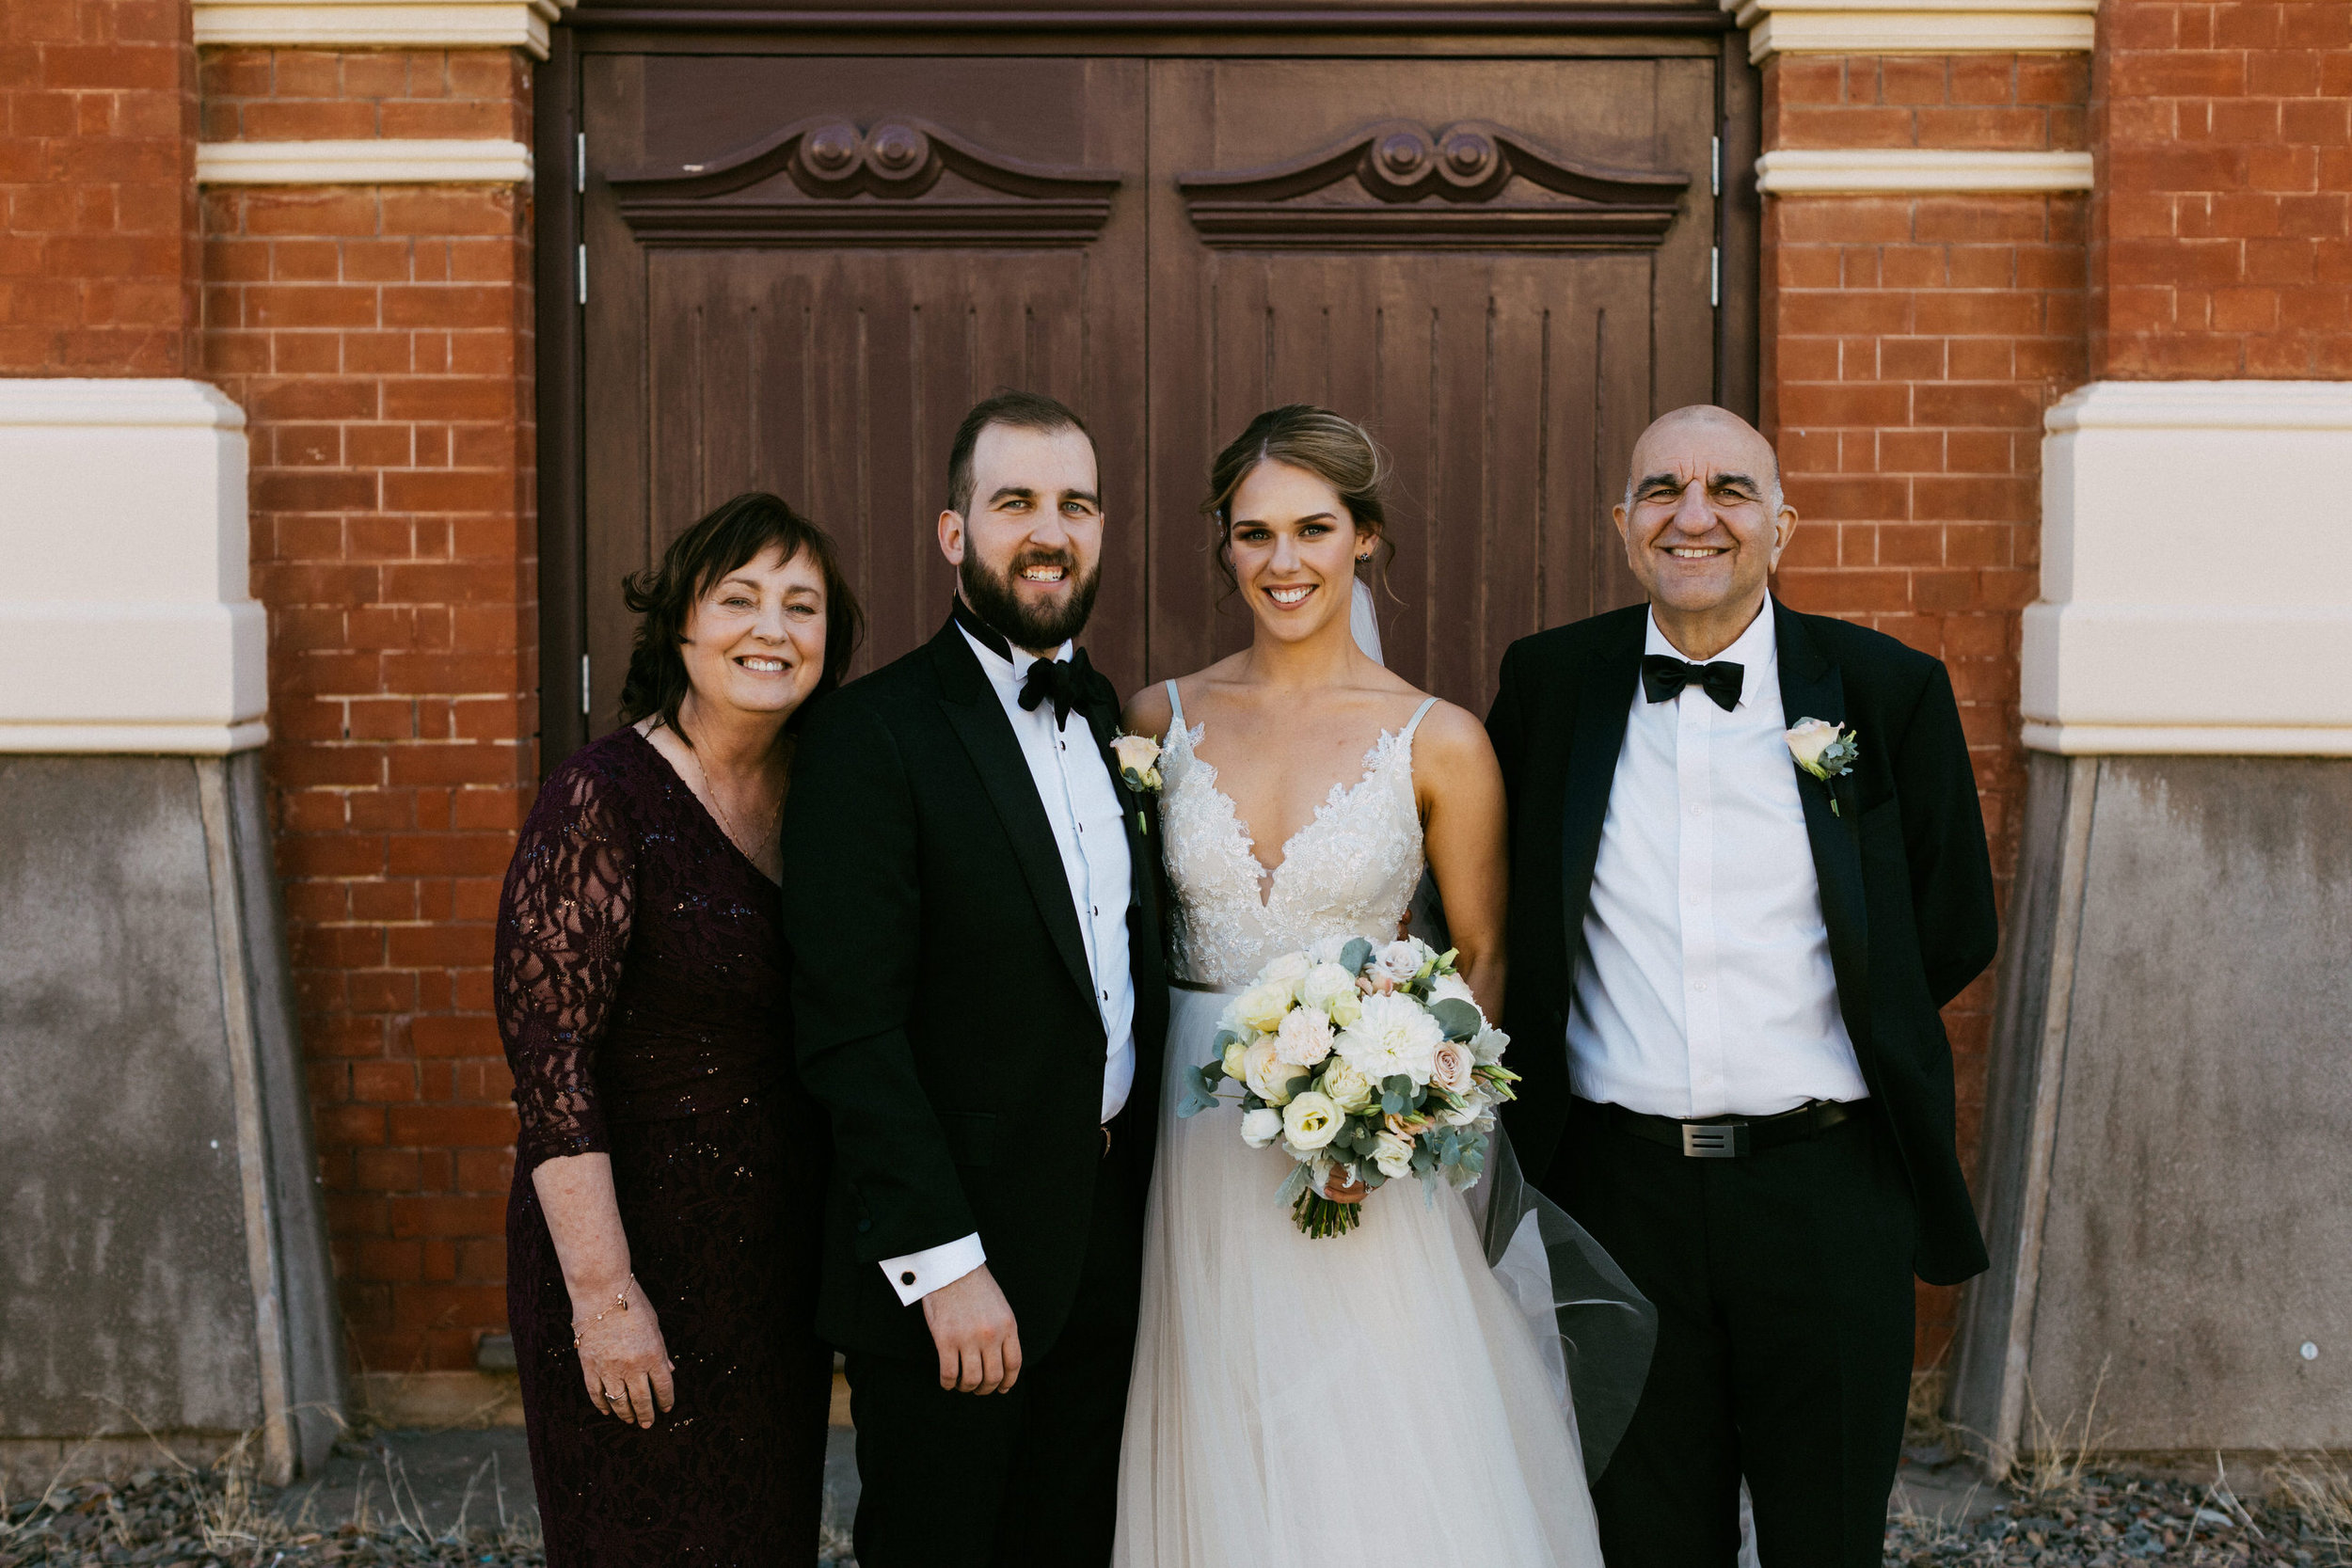 Adelaide Wedding 2019 086.jpg